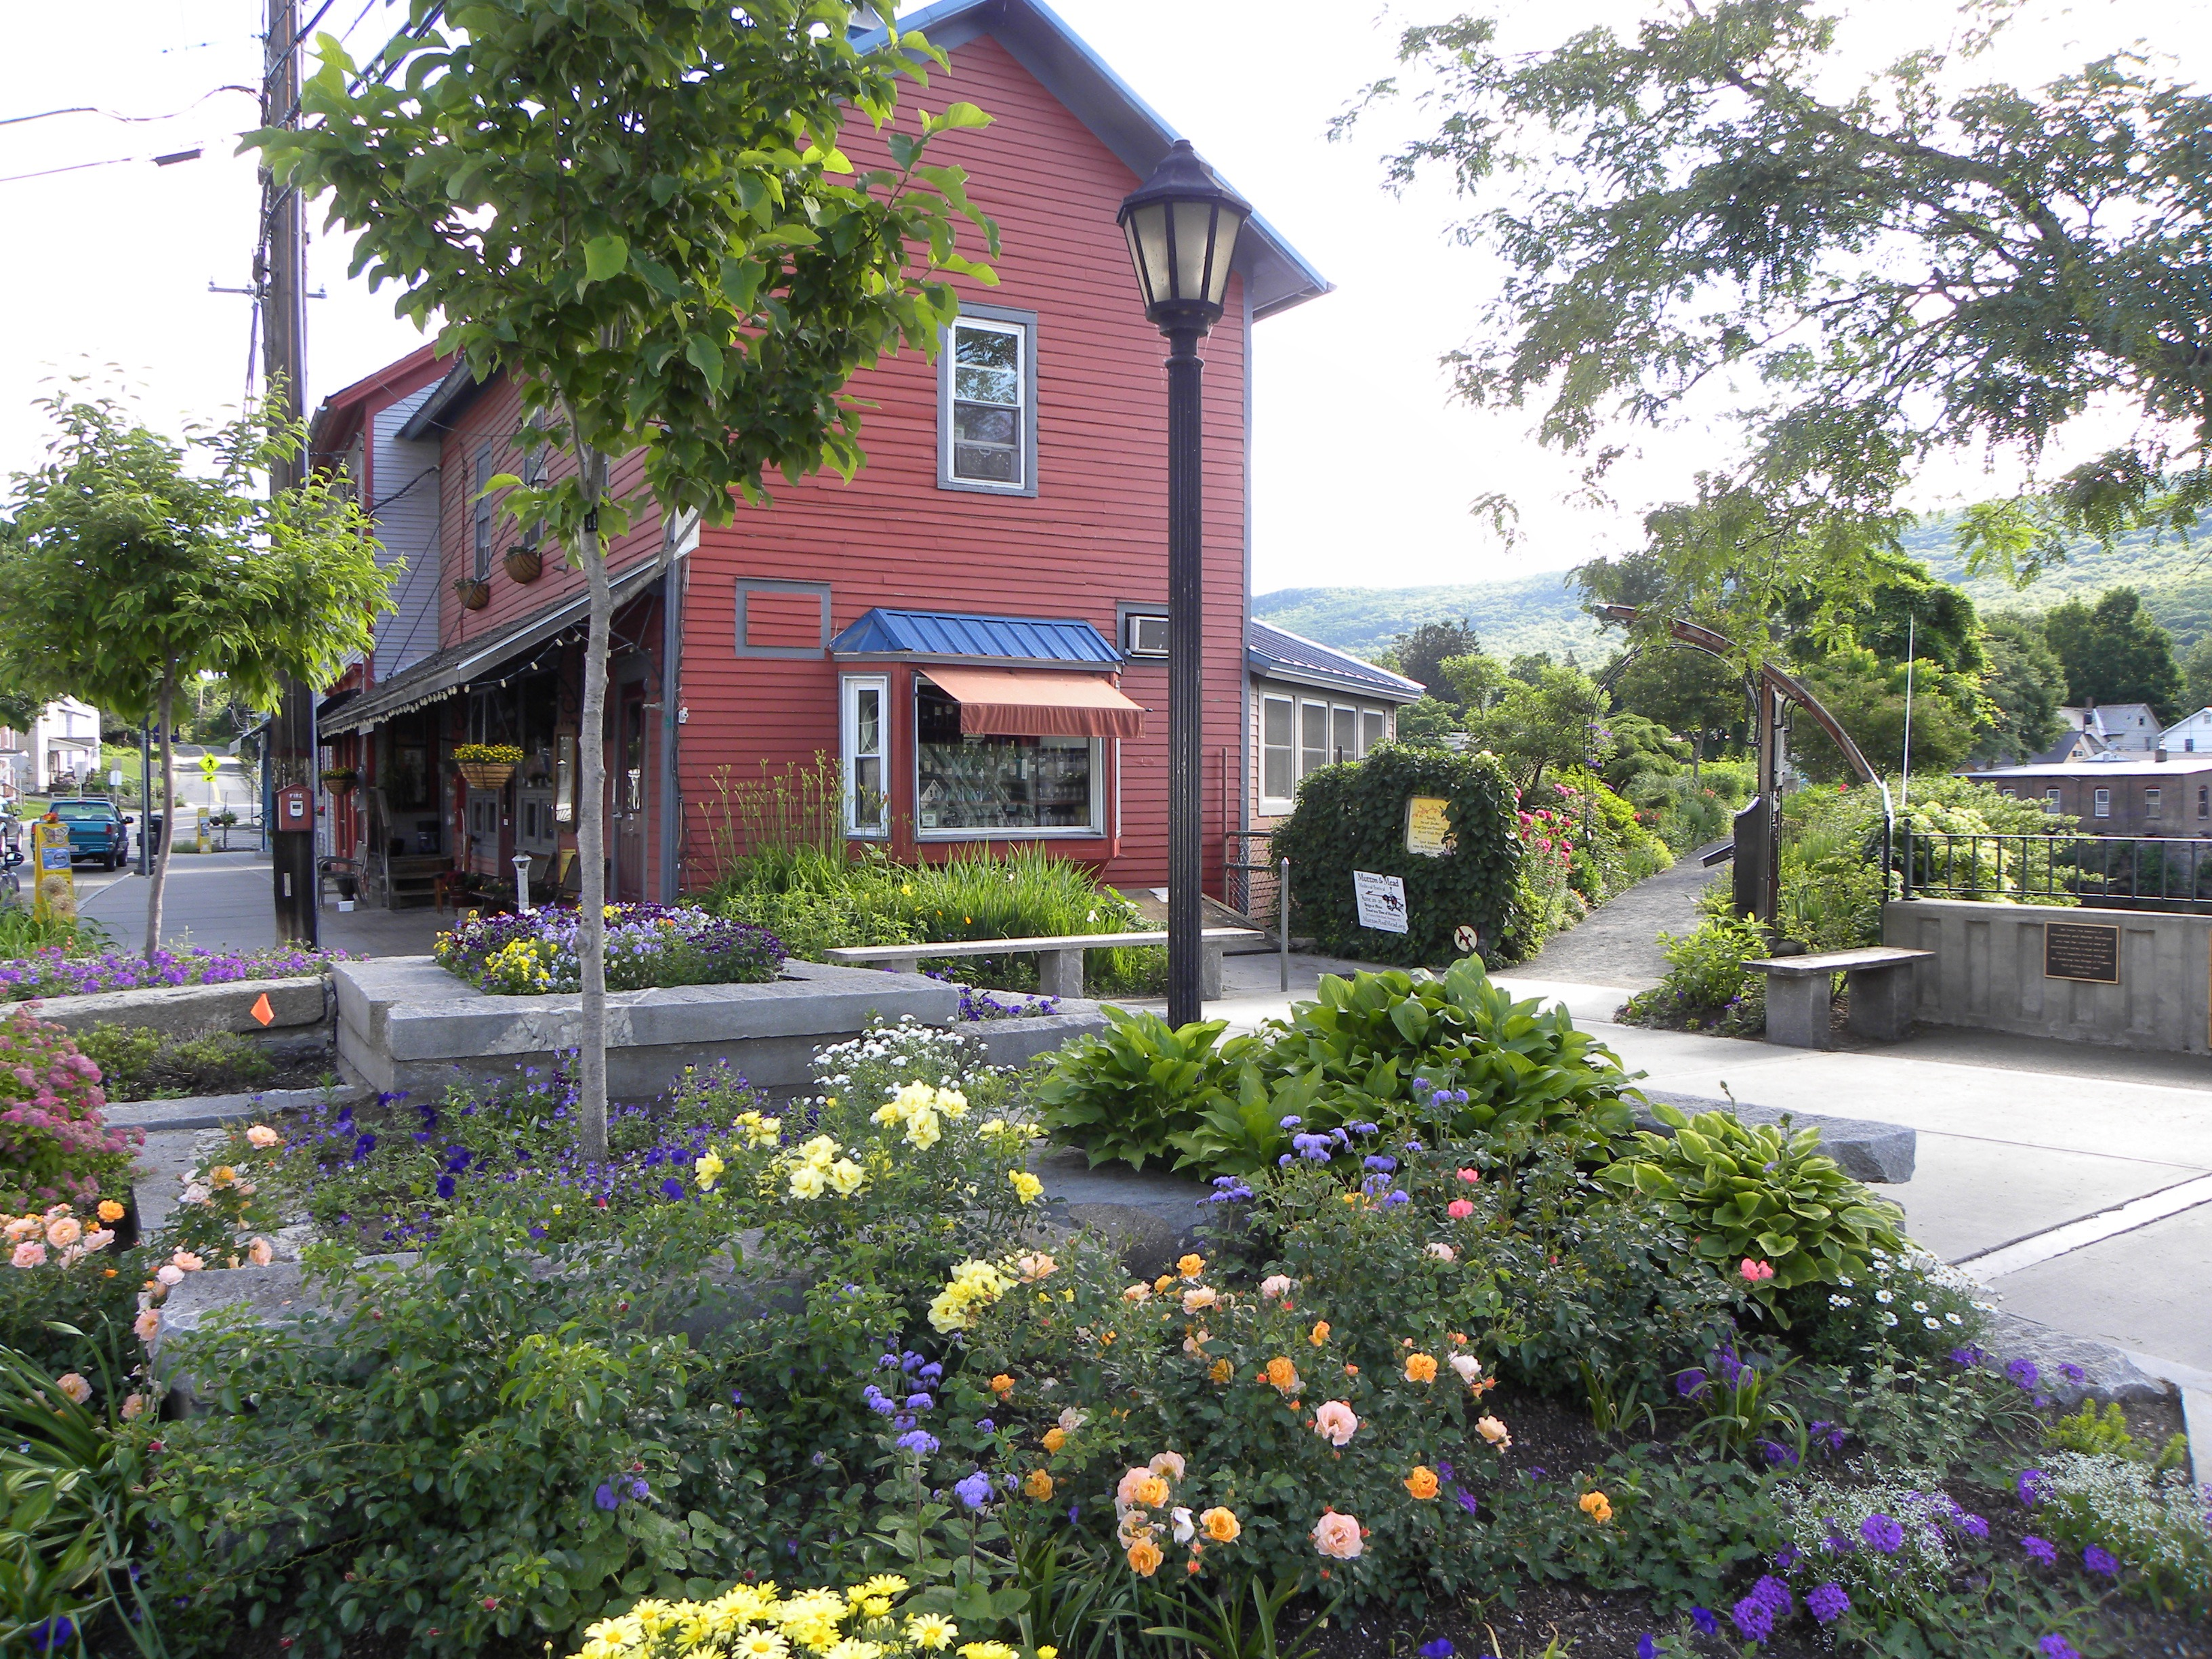 West end pub Shelburne falls massachusetts bridge of flowers